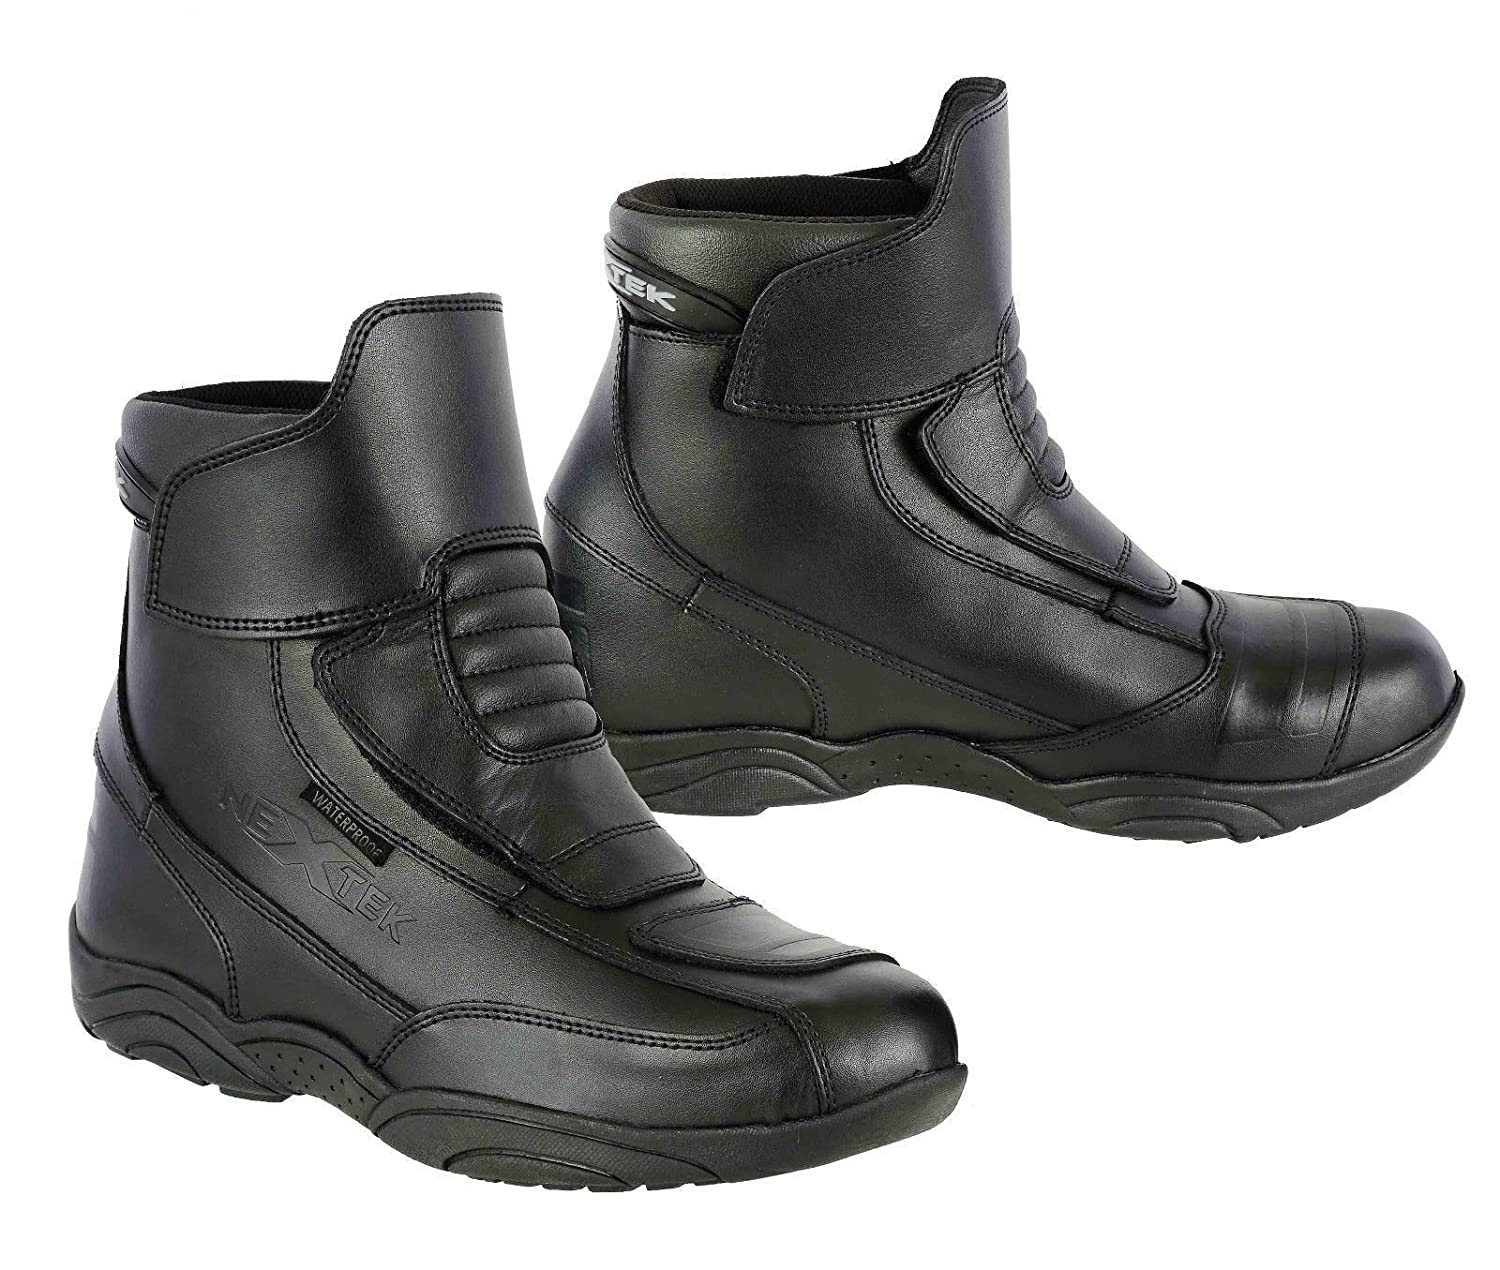 UK 10 EU 44 Full Black PROFIRST Zip Free 100/% Genuine Leather Motorbike Motorcycle Boots Armoured Shoes Short Ankle Racing Sports Urban Touring Cruise